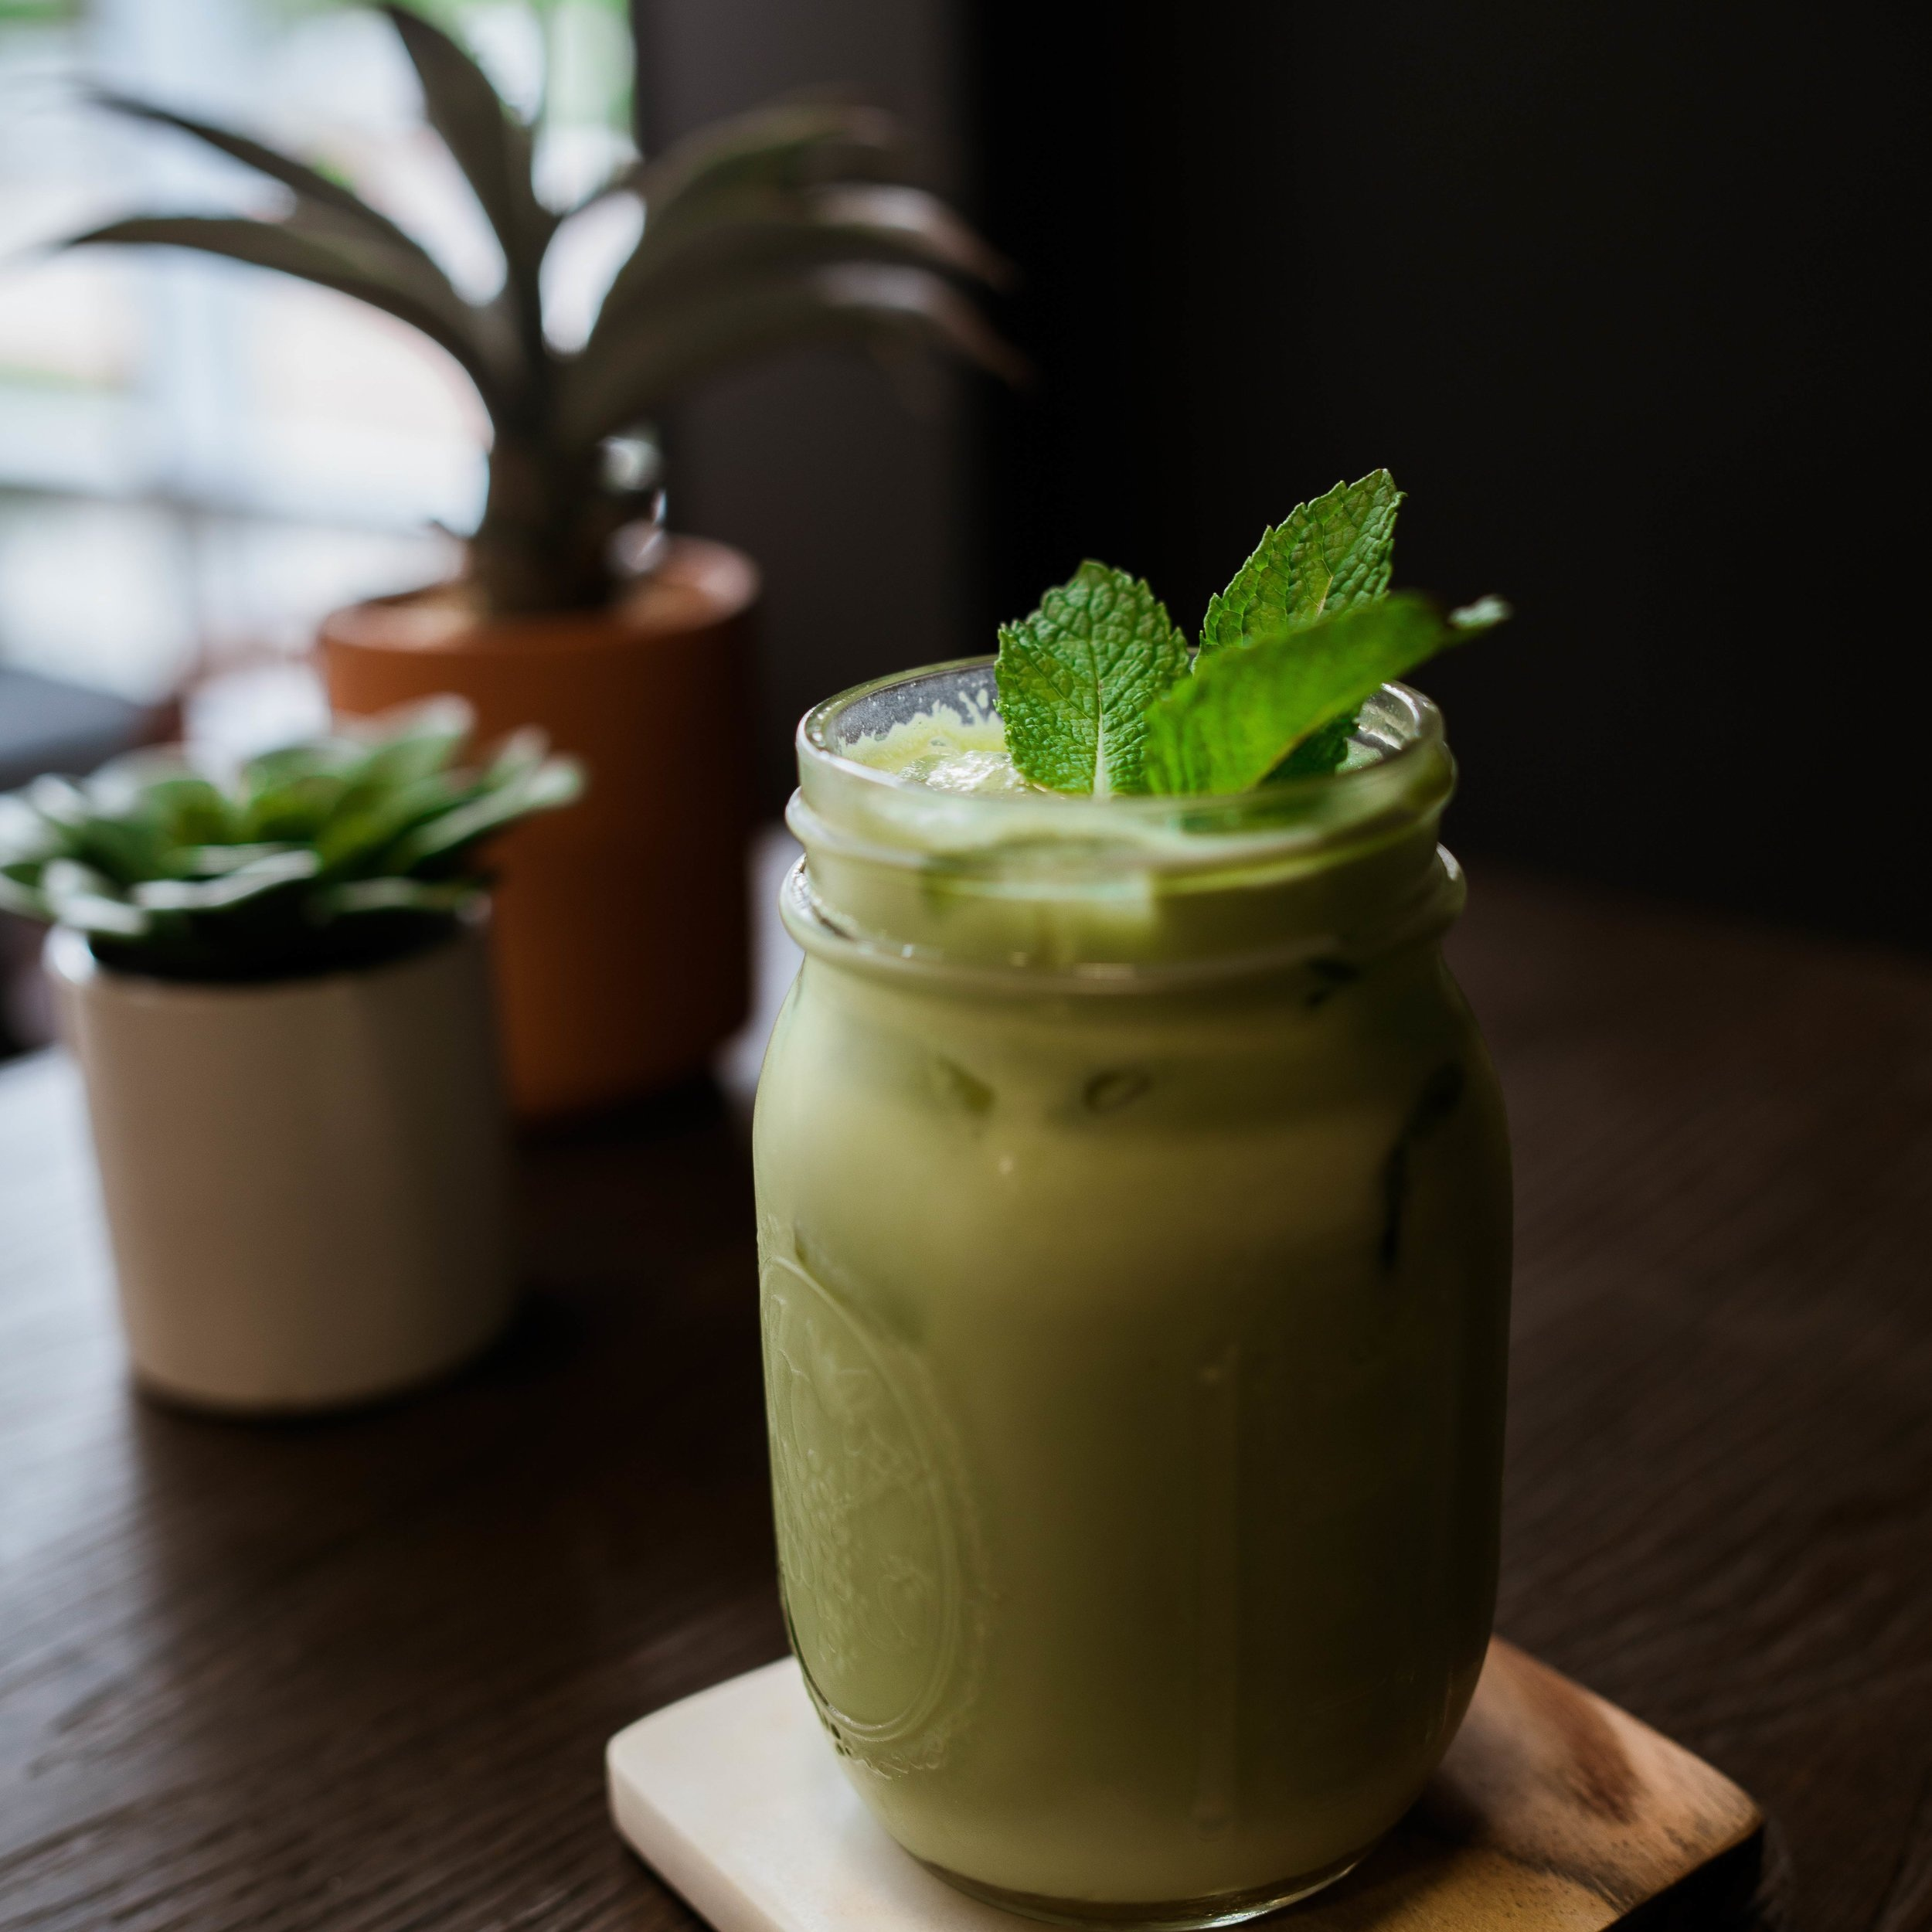 Shake, Shake, Shake - No time for bamboo whisk? No worries, we've got you covered. You can simply combine matcha, cold water/milk, and a few ice cubes (optional) in a bottle and give it a good shake! You can also add a scoop of matcha to your favorite breakfast and/or post-workout smoothie.